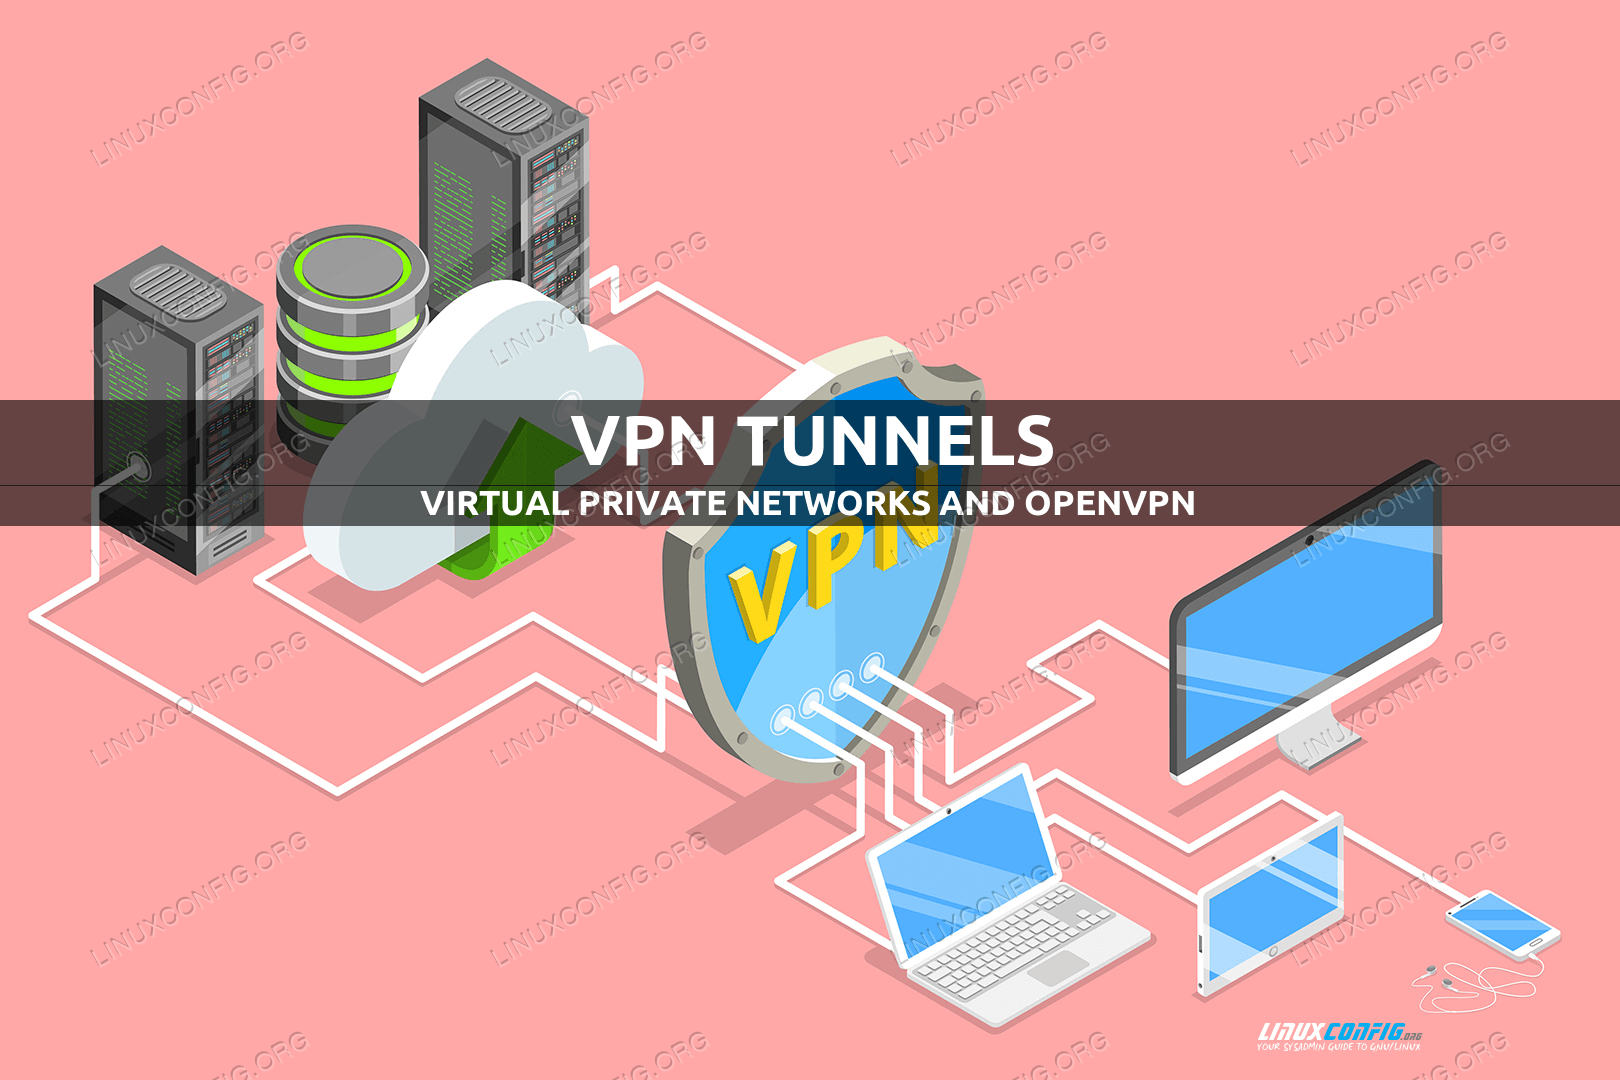 Creating a Virtual Private Network with OpenVPN